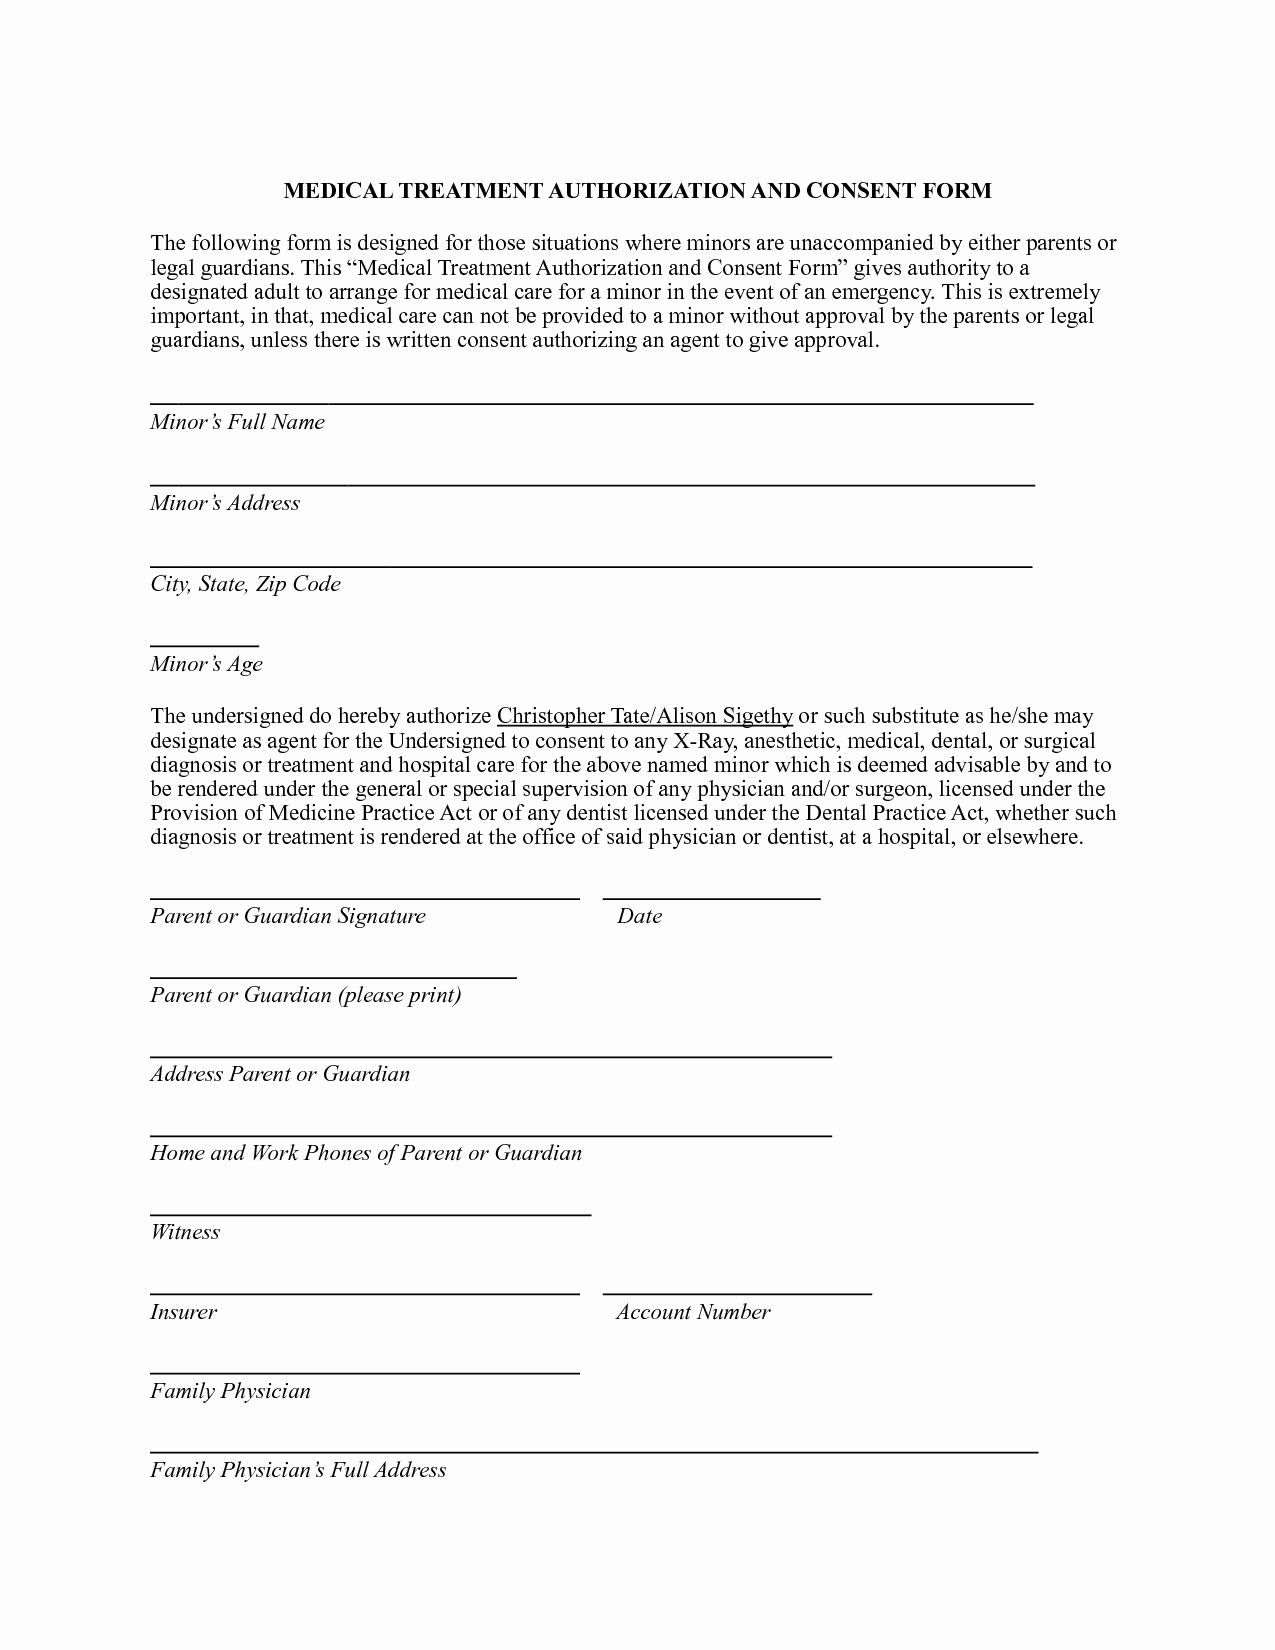 Parents Consent form Template Lovely Parental Consent form for Medical Treatment Free